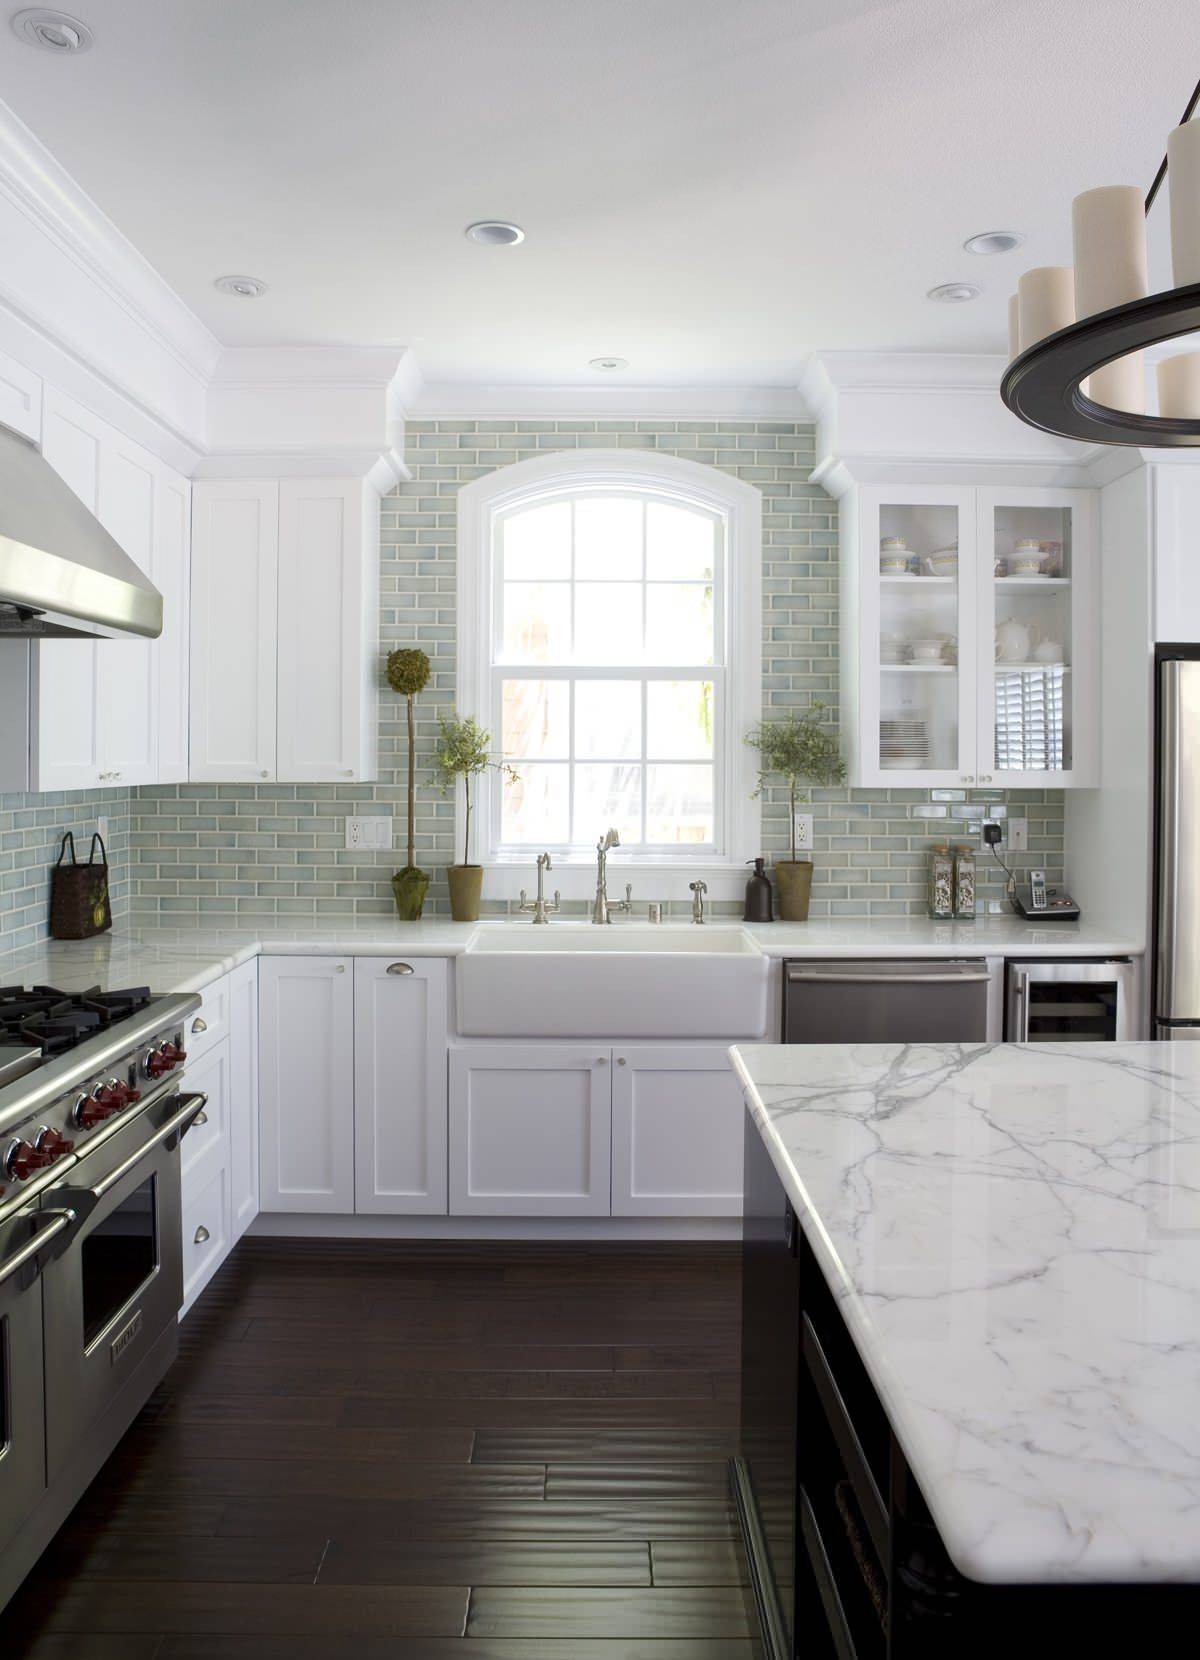 Traditional-kitchen-in-San-Francisco-with-a-black-and-white-color-scheme-along-with-marble-countertops-14449